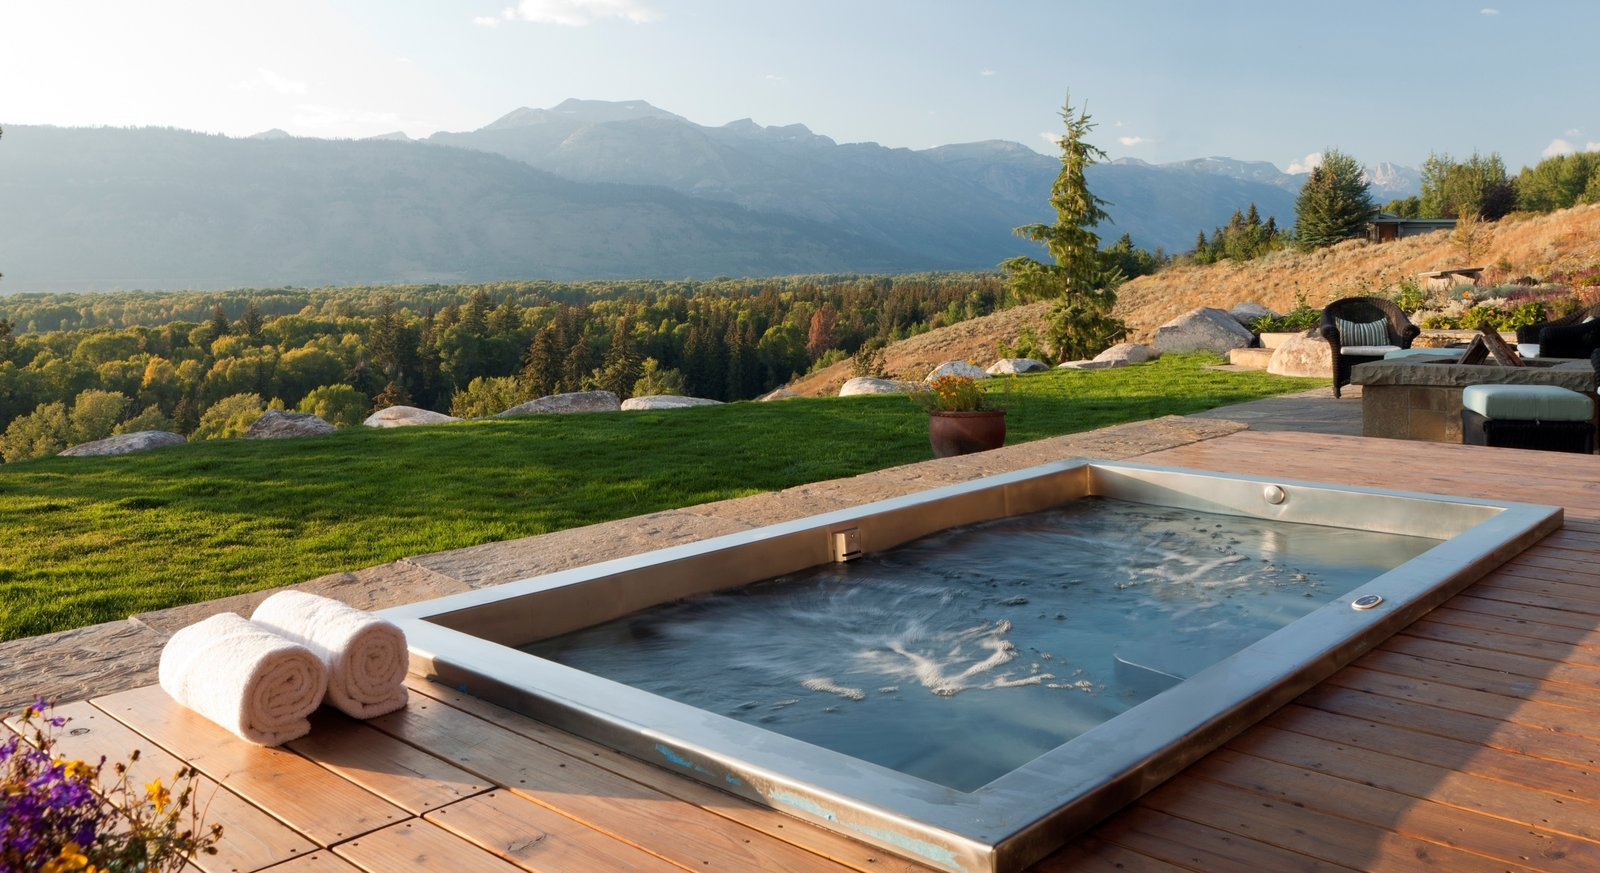 Stainless Steel Drop In Hot Tub